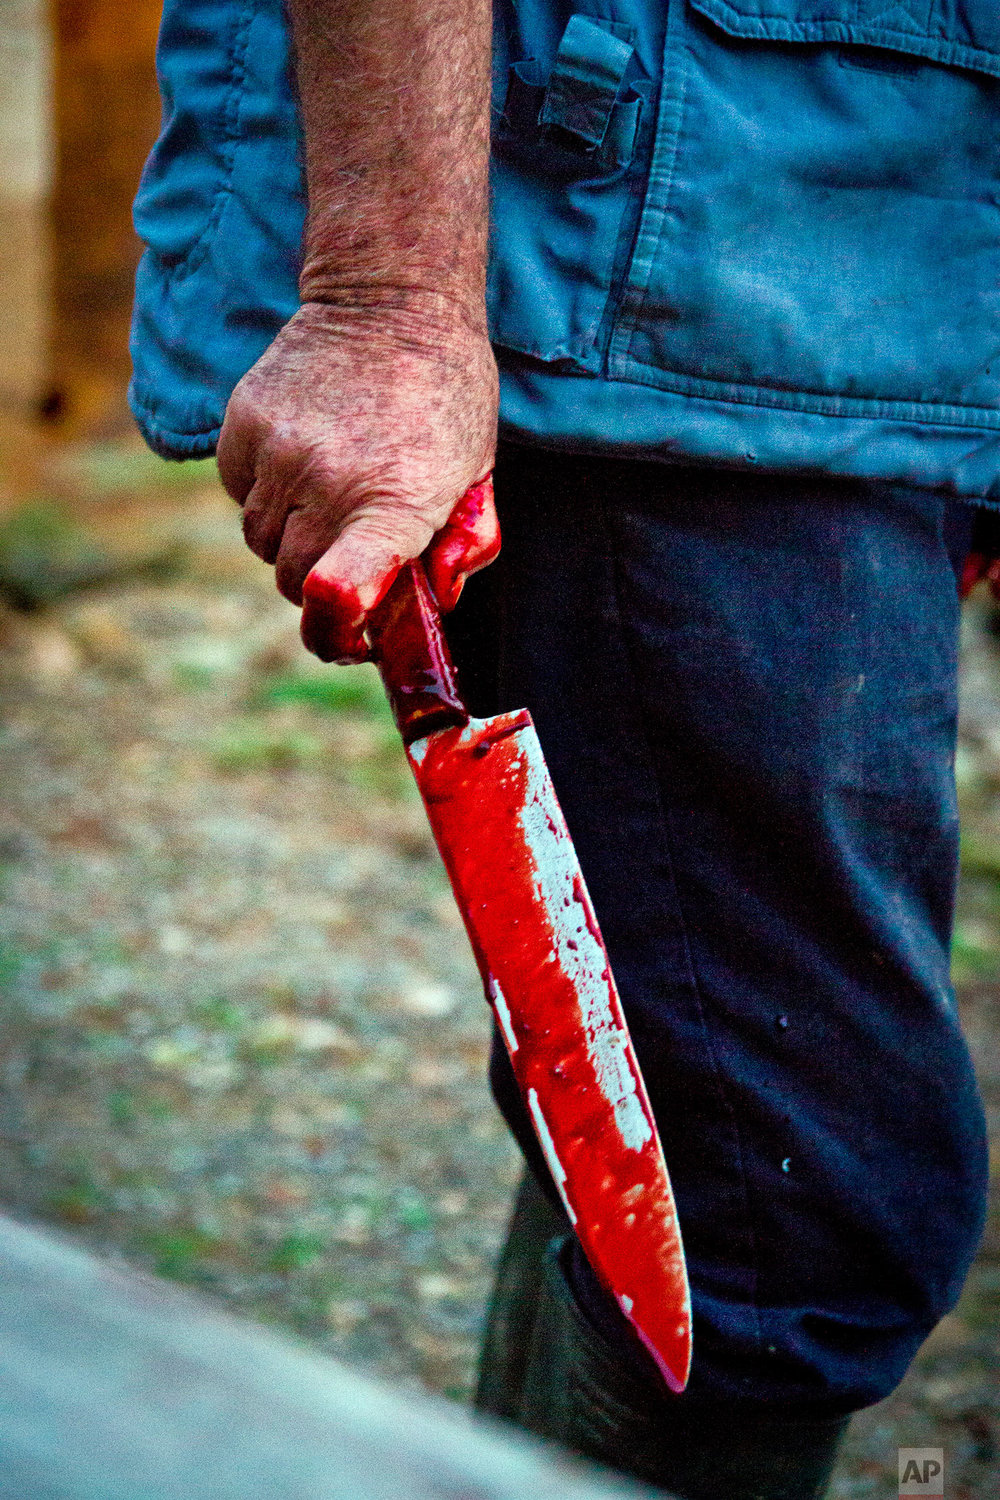 In this photo taken on Nov. 24, 2018, Lorenzo, a professional slaughterer, holds a knife which was used to slaughter a pig near Petra, some 60 kilometres from Palma, the capital of Mallorca, Spain. (AP Photo/Francisco Ubilla)